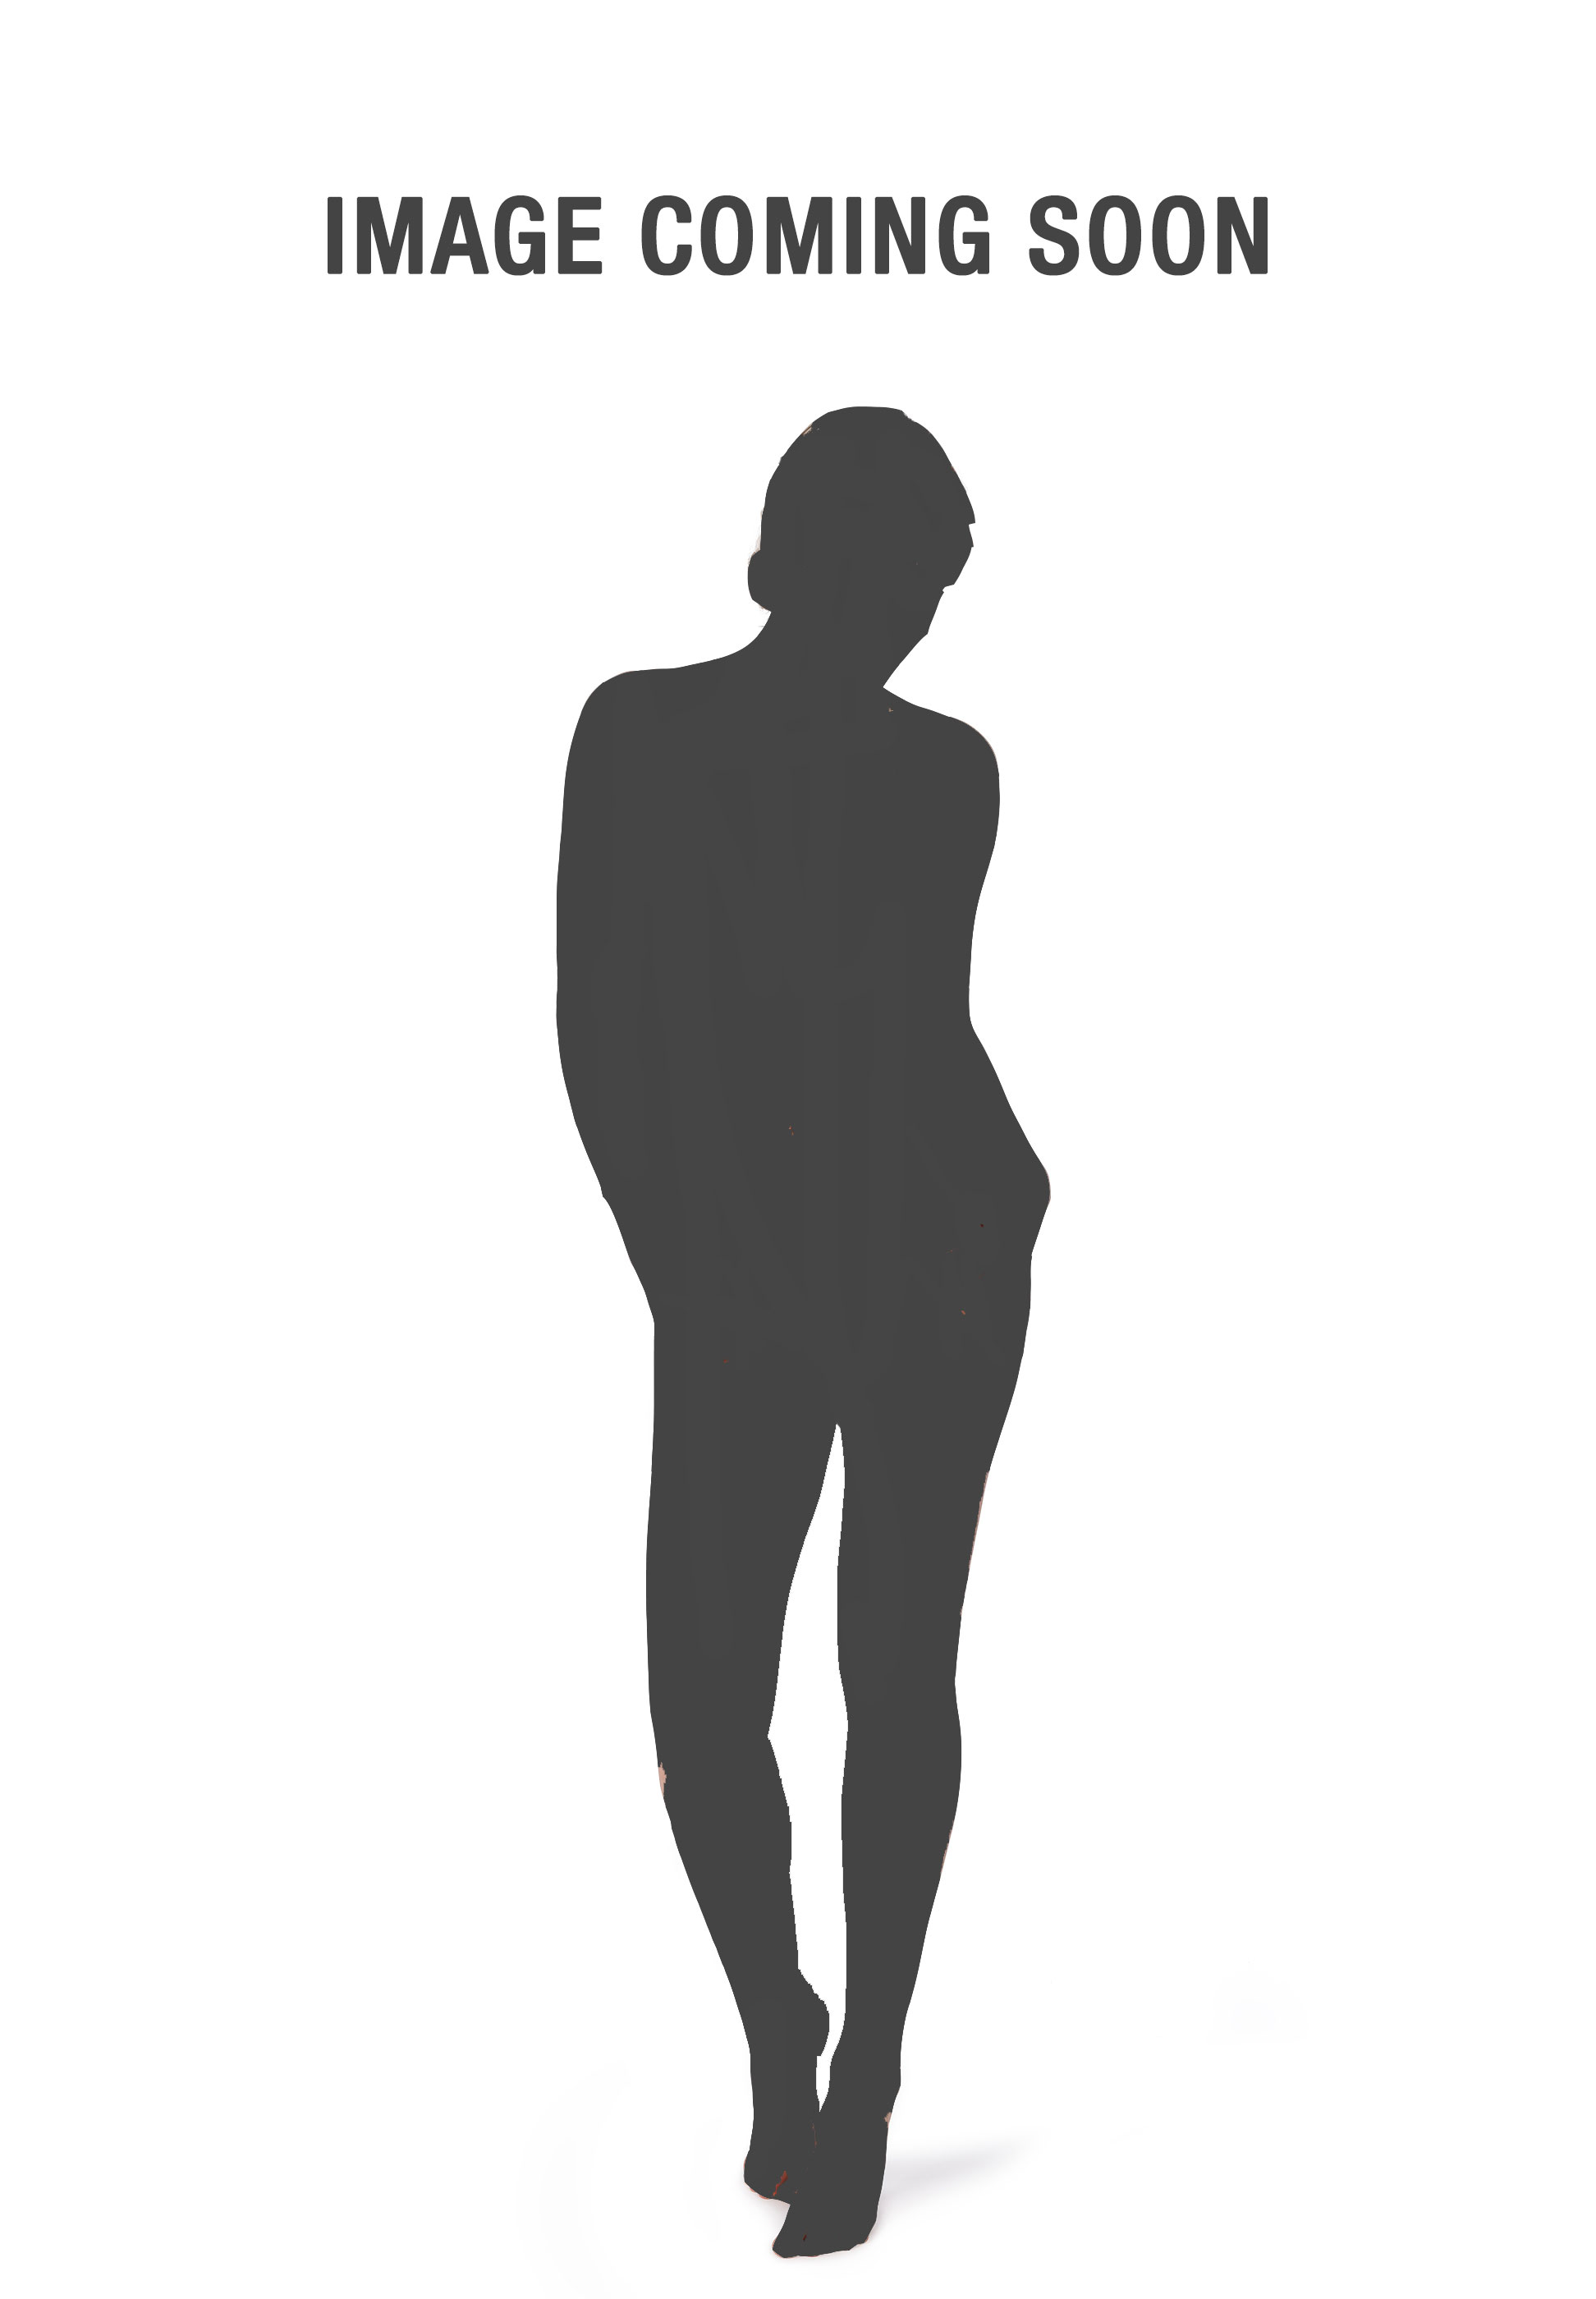 HUBER_Basic_M_WovenTender_pyjamalong_117600_018494_010.jpg